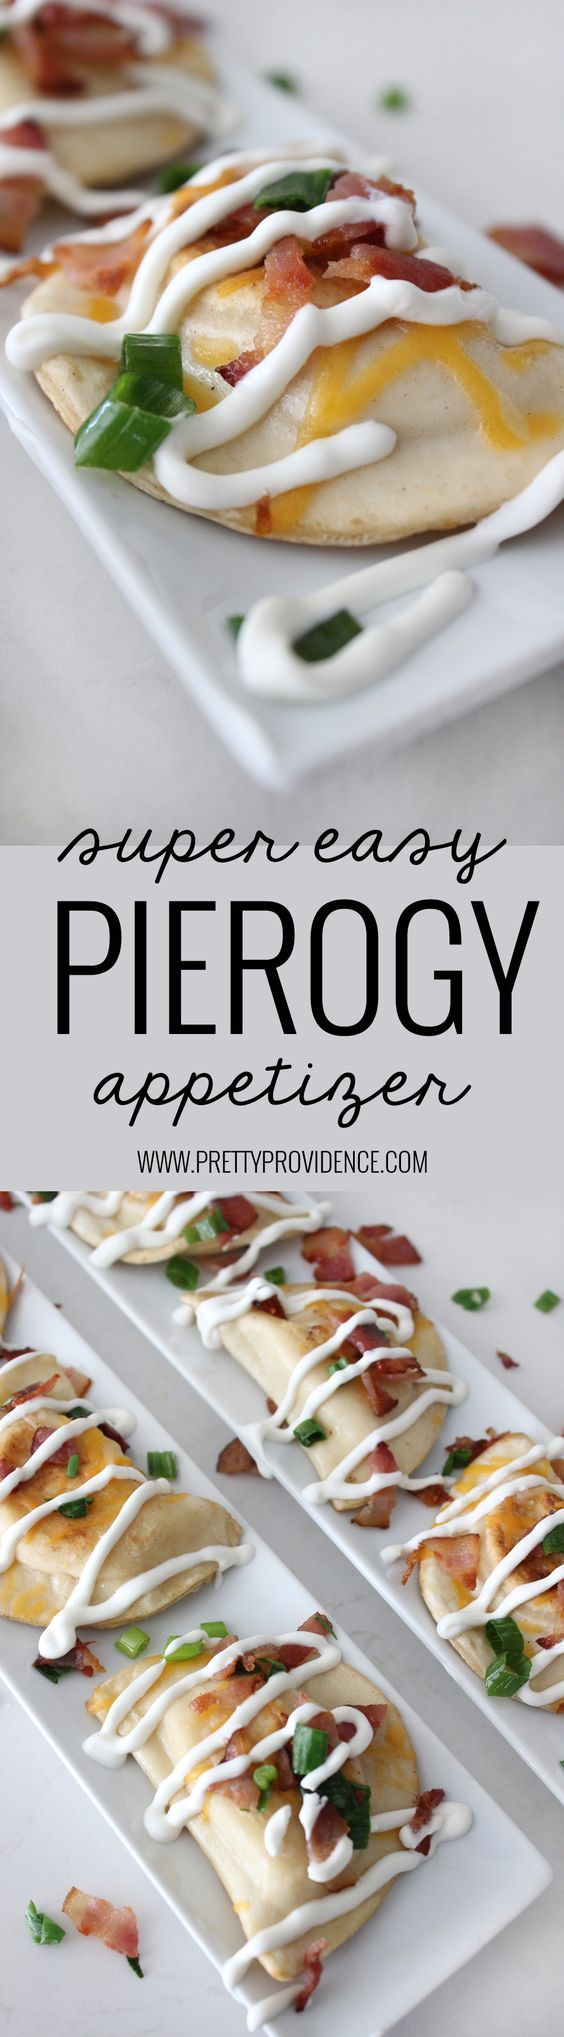 This SUPER EASY Pierogy appetizer is so delicious! Perfect for watching the game with friends or making a date night in of your favorite TV series!